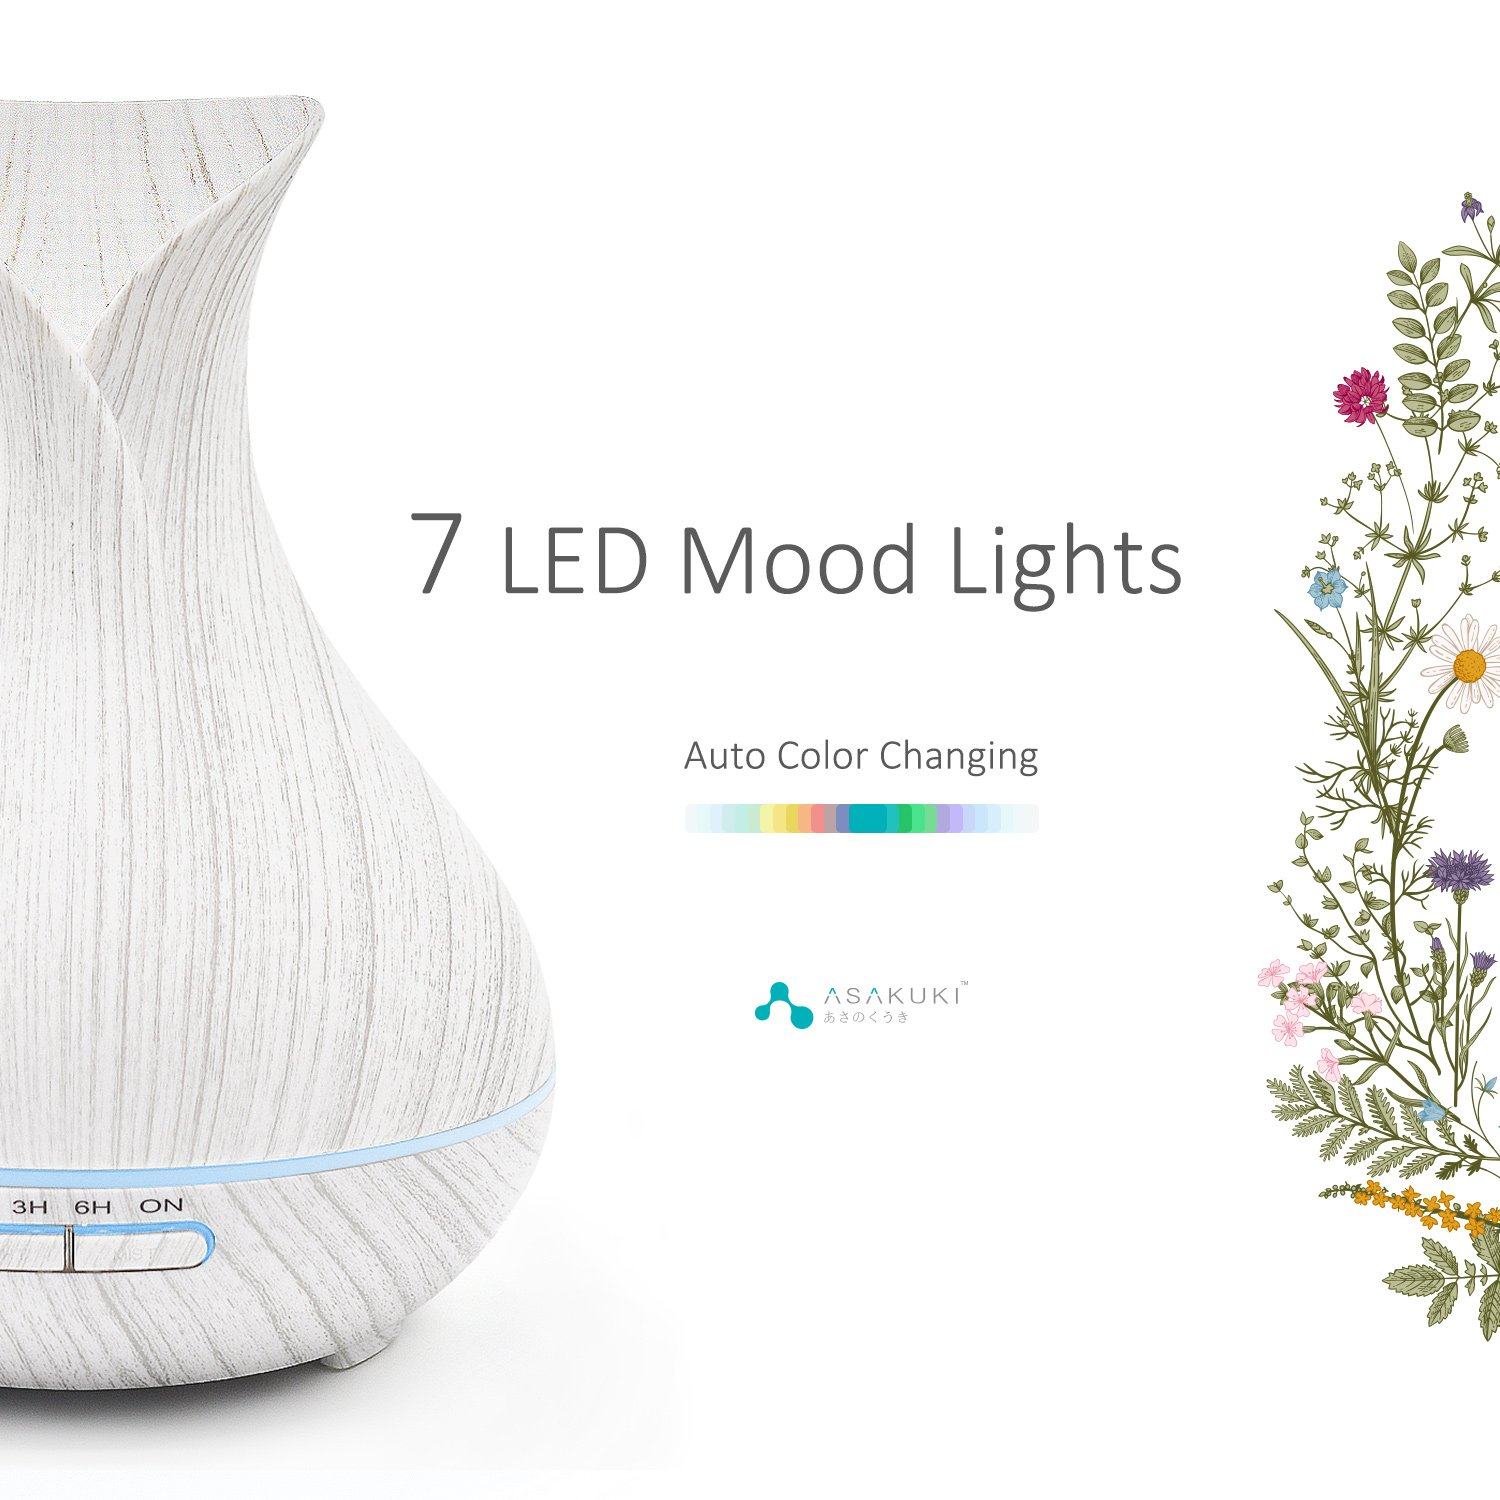 ASAKUKI 400ML Premium, Essential Oil Diffuser, Quiet 5-in-1 Humidifier, Natural Home Fragrance Diffuser with 7 LED Color Changing Light and Easy to Clean by ASAKUKI (Image #2)